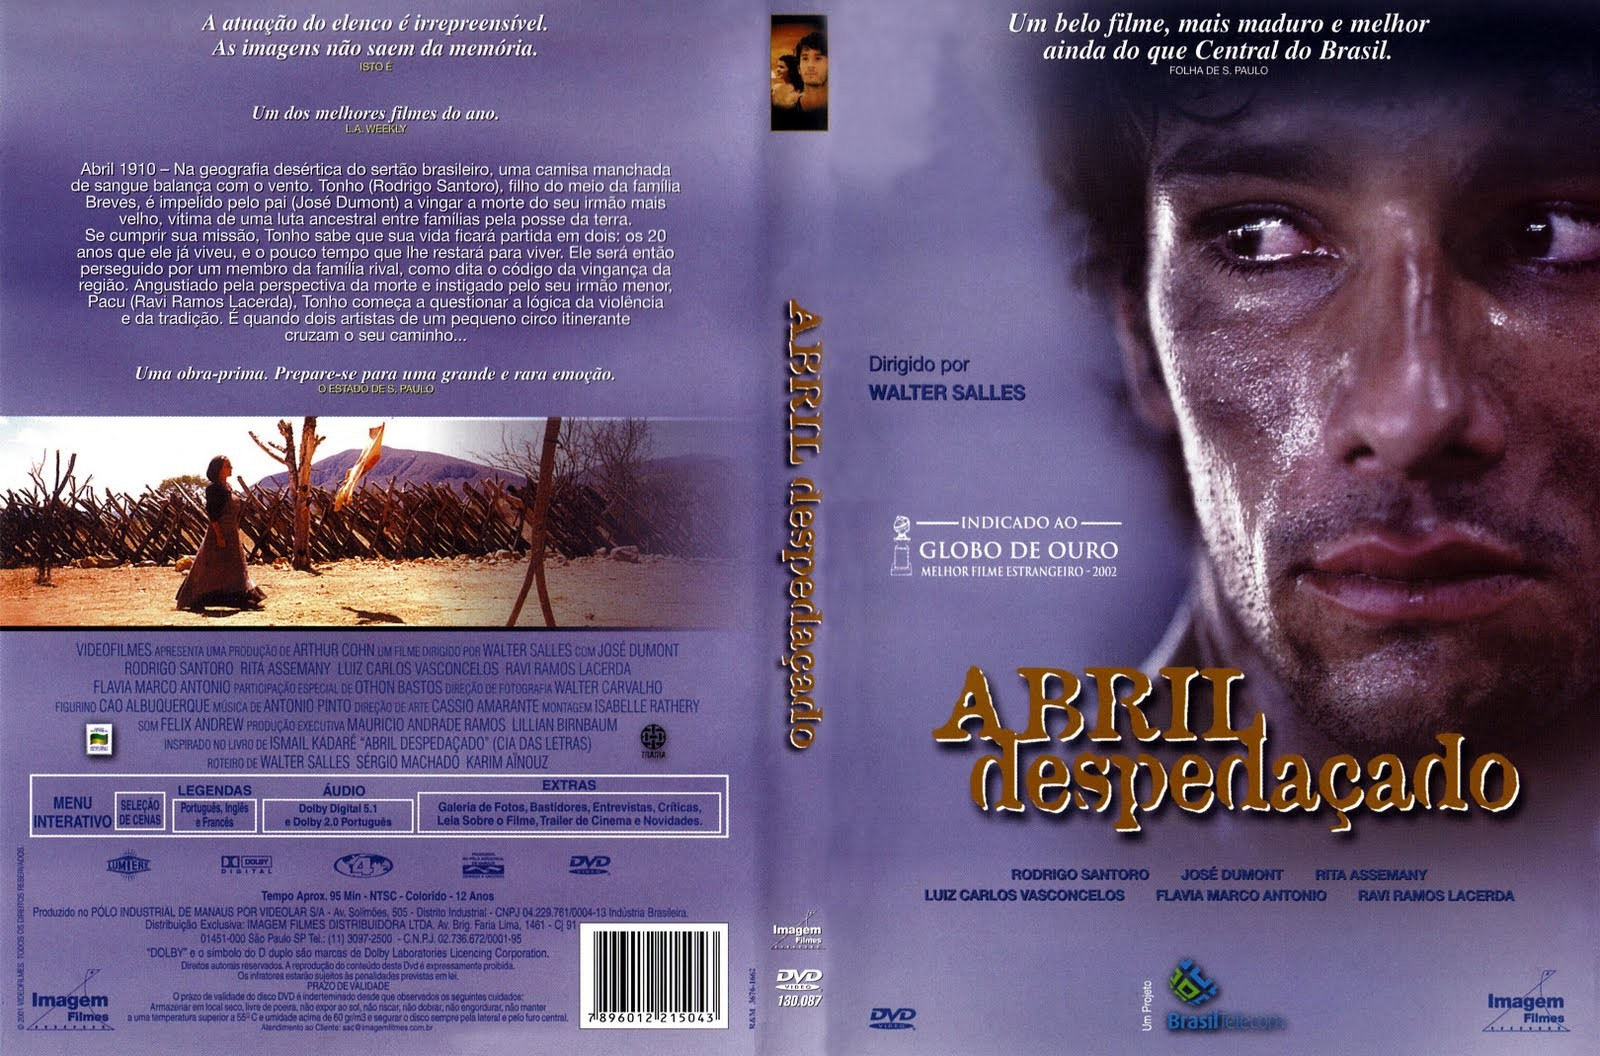 DVD LACRADO ABRIL DESPEDACADO RODRIGO SANTORO - AUDIO EM PORTUGUES